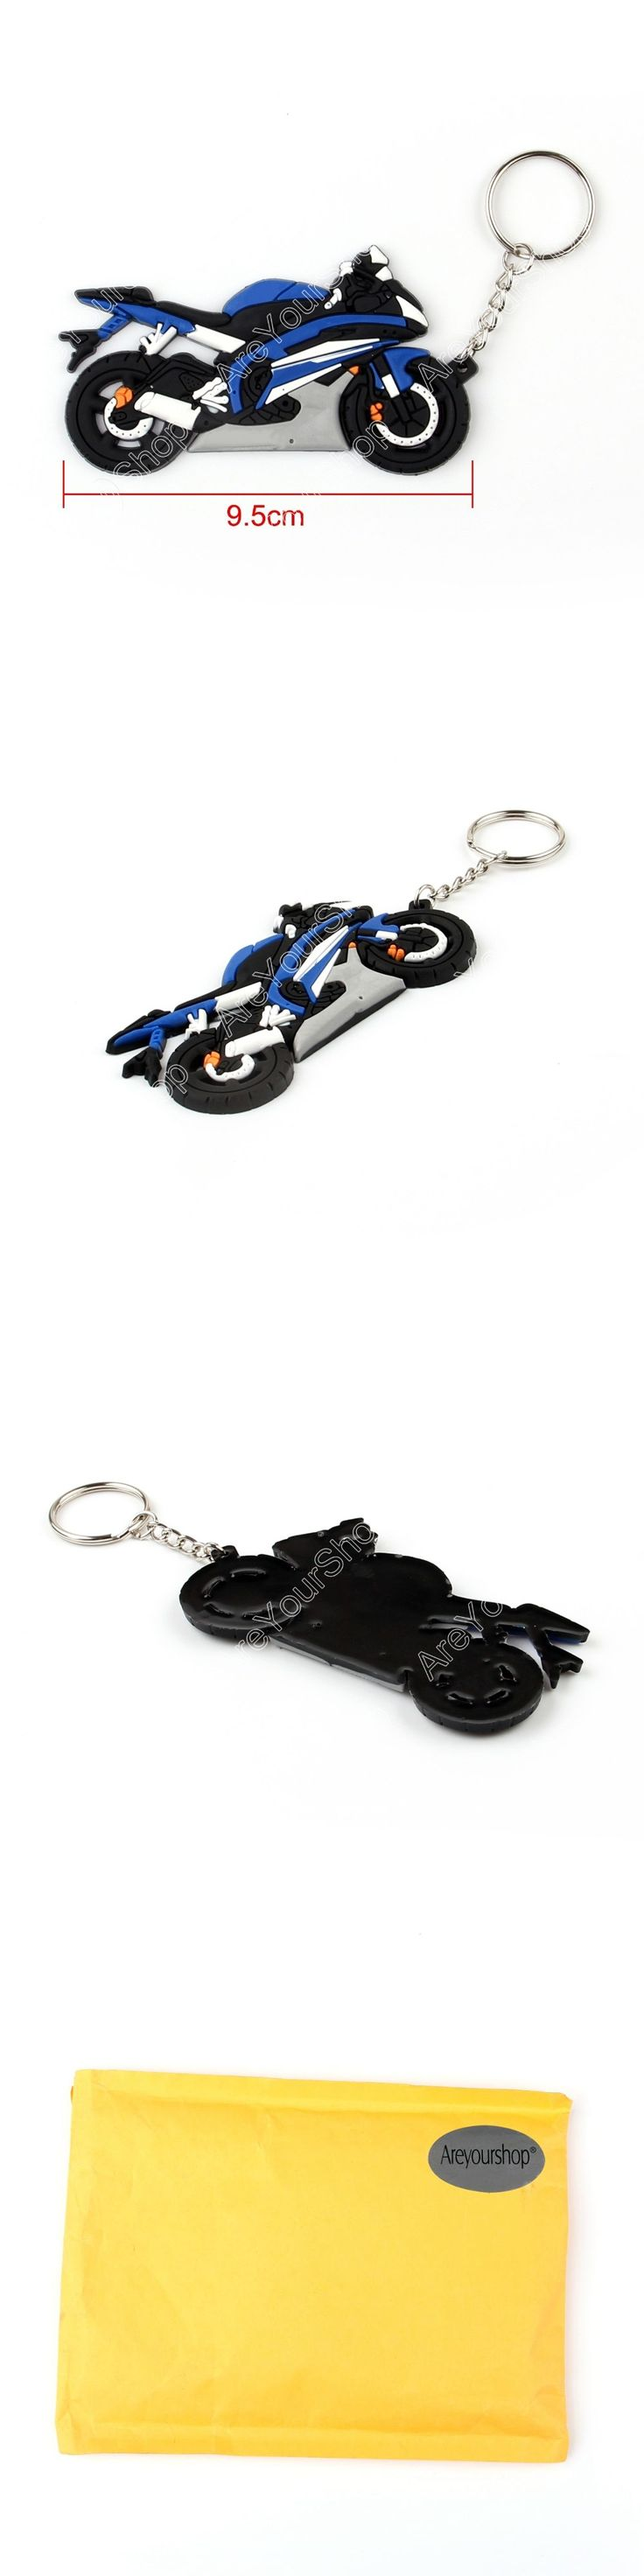 Areyourshop Sale Rubber Motorcycle Model Cool Keyring Keychain Key Chain Pendant For Yamaha R6